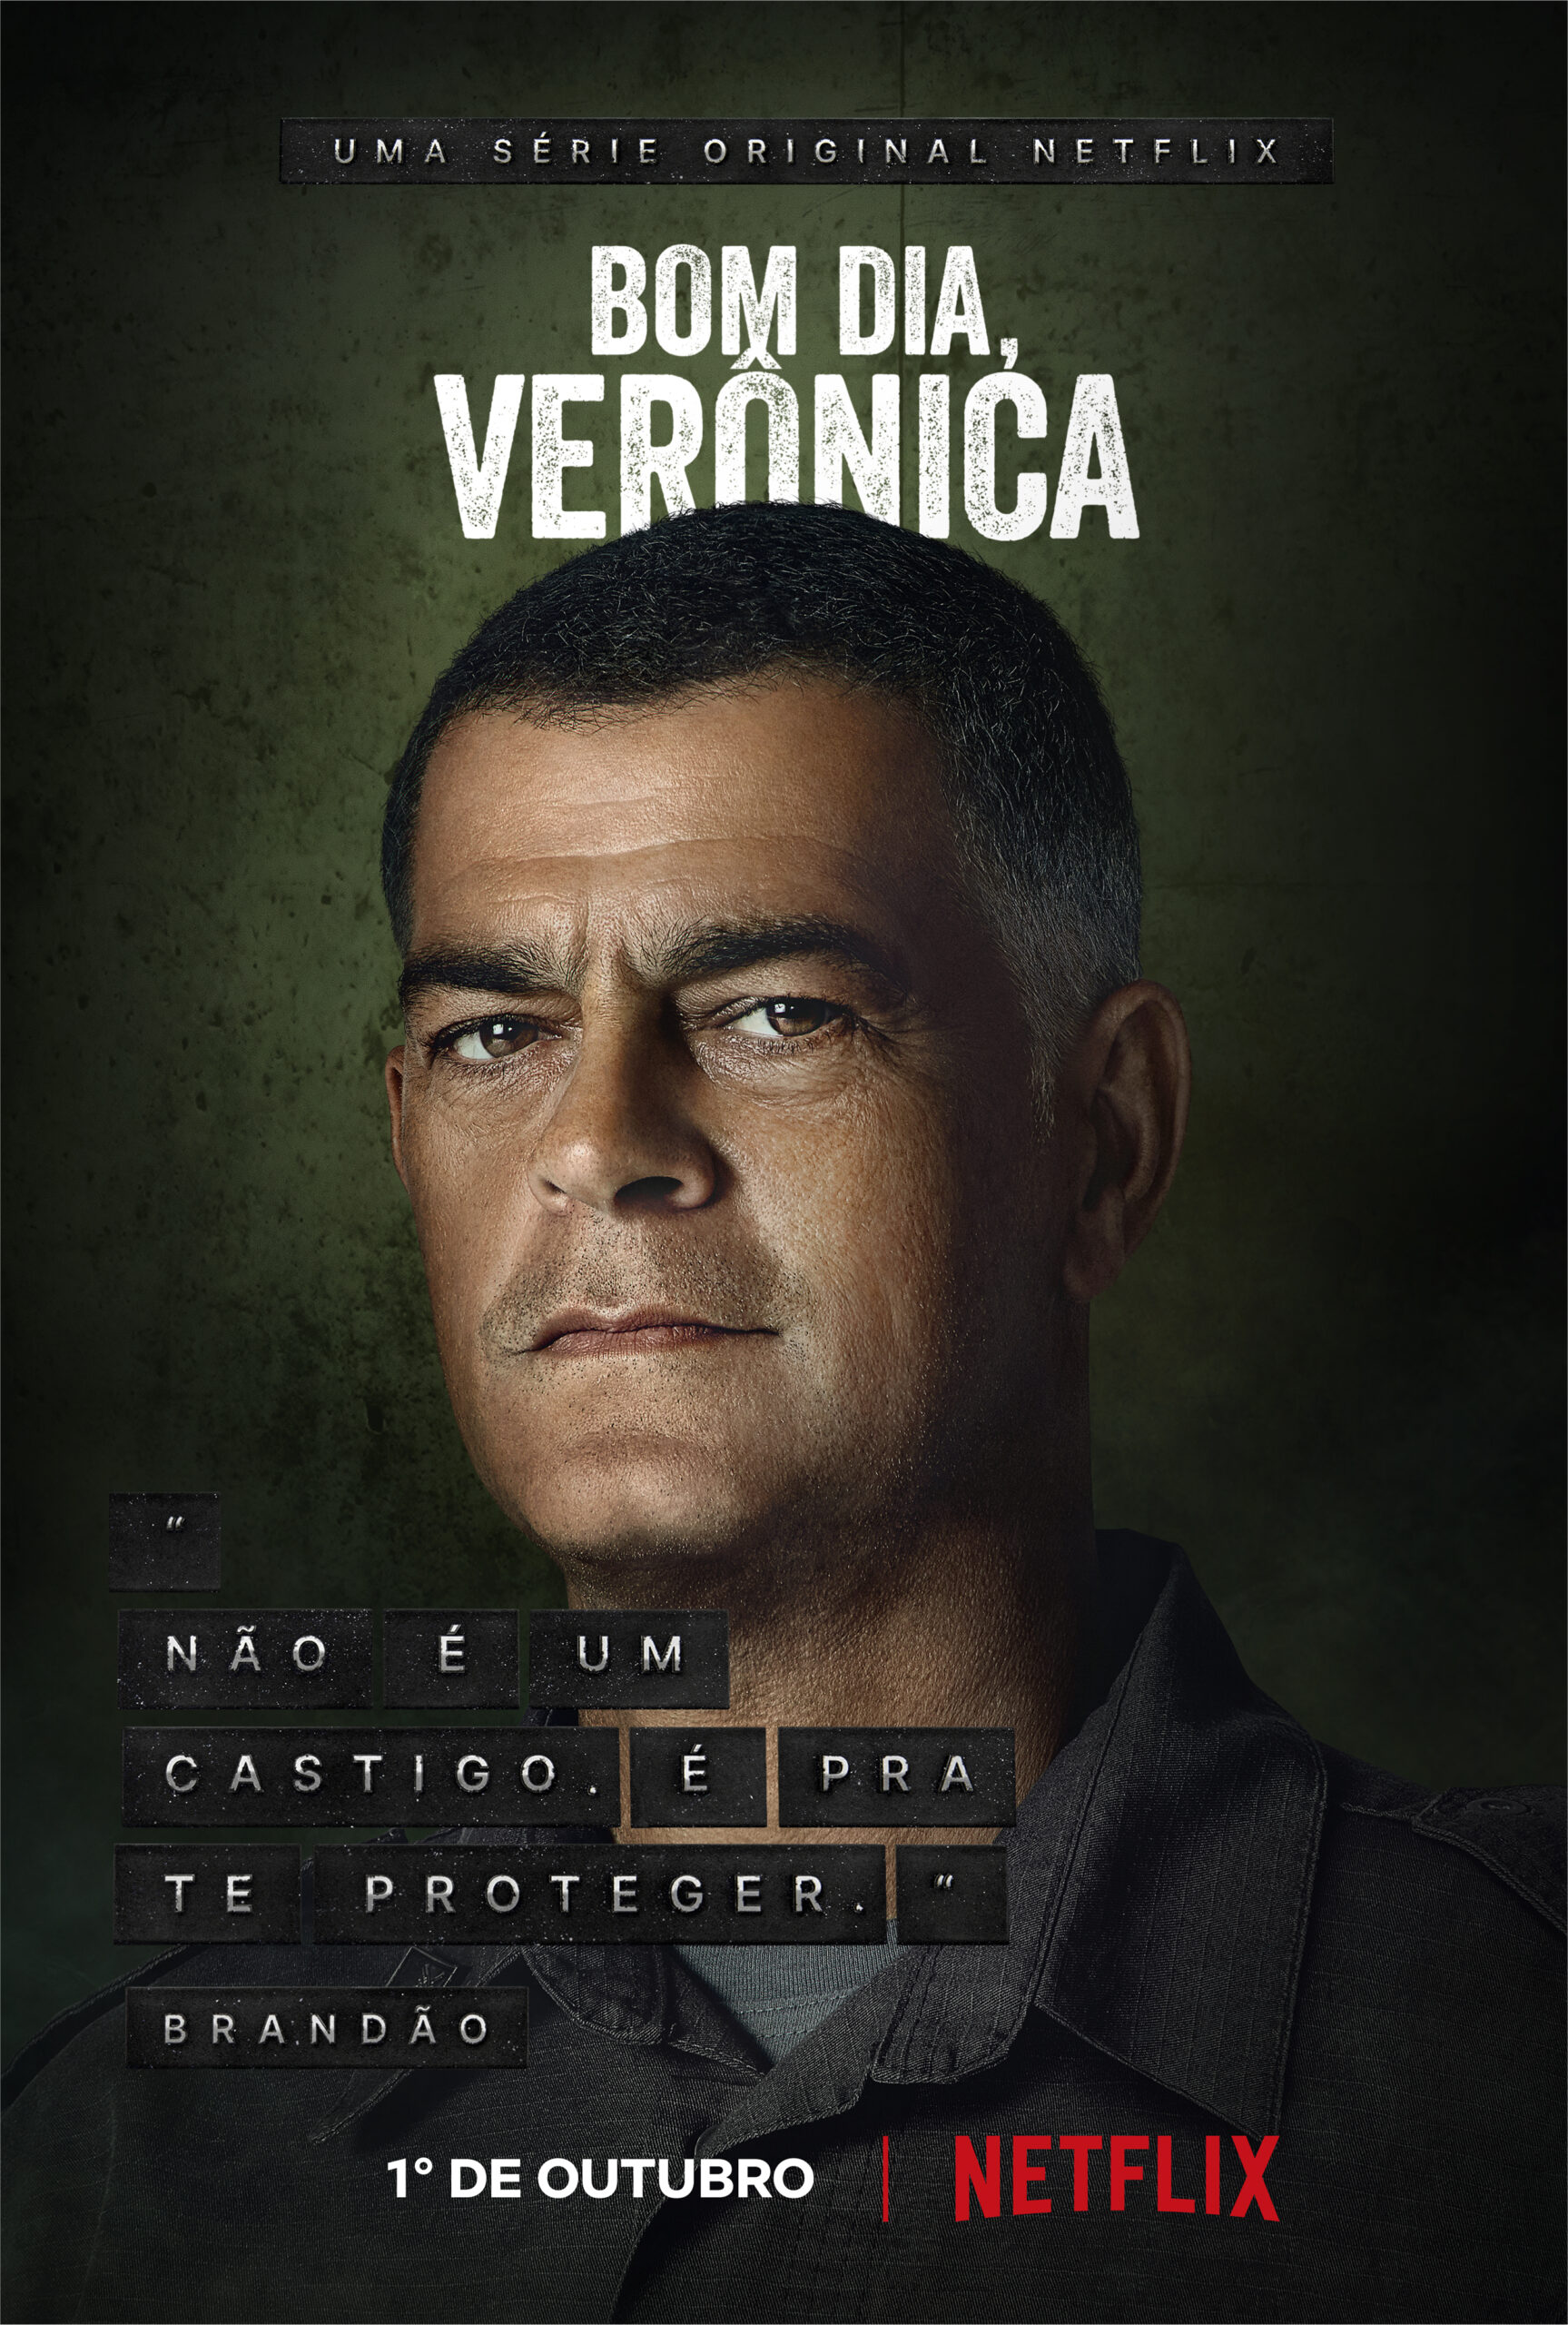 bom dia veronica posters 2 scaled